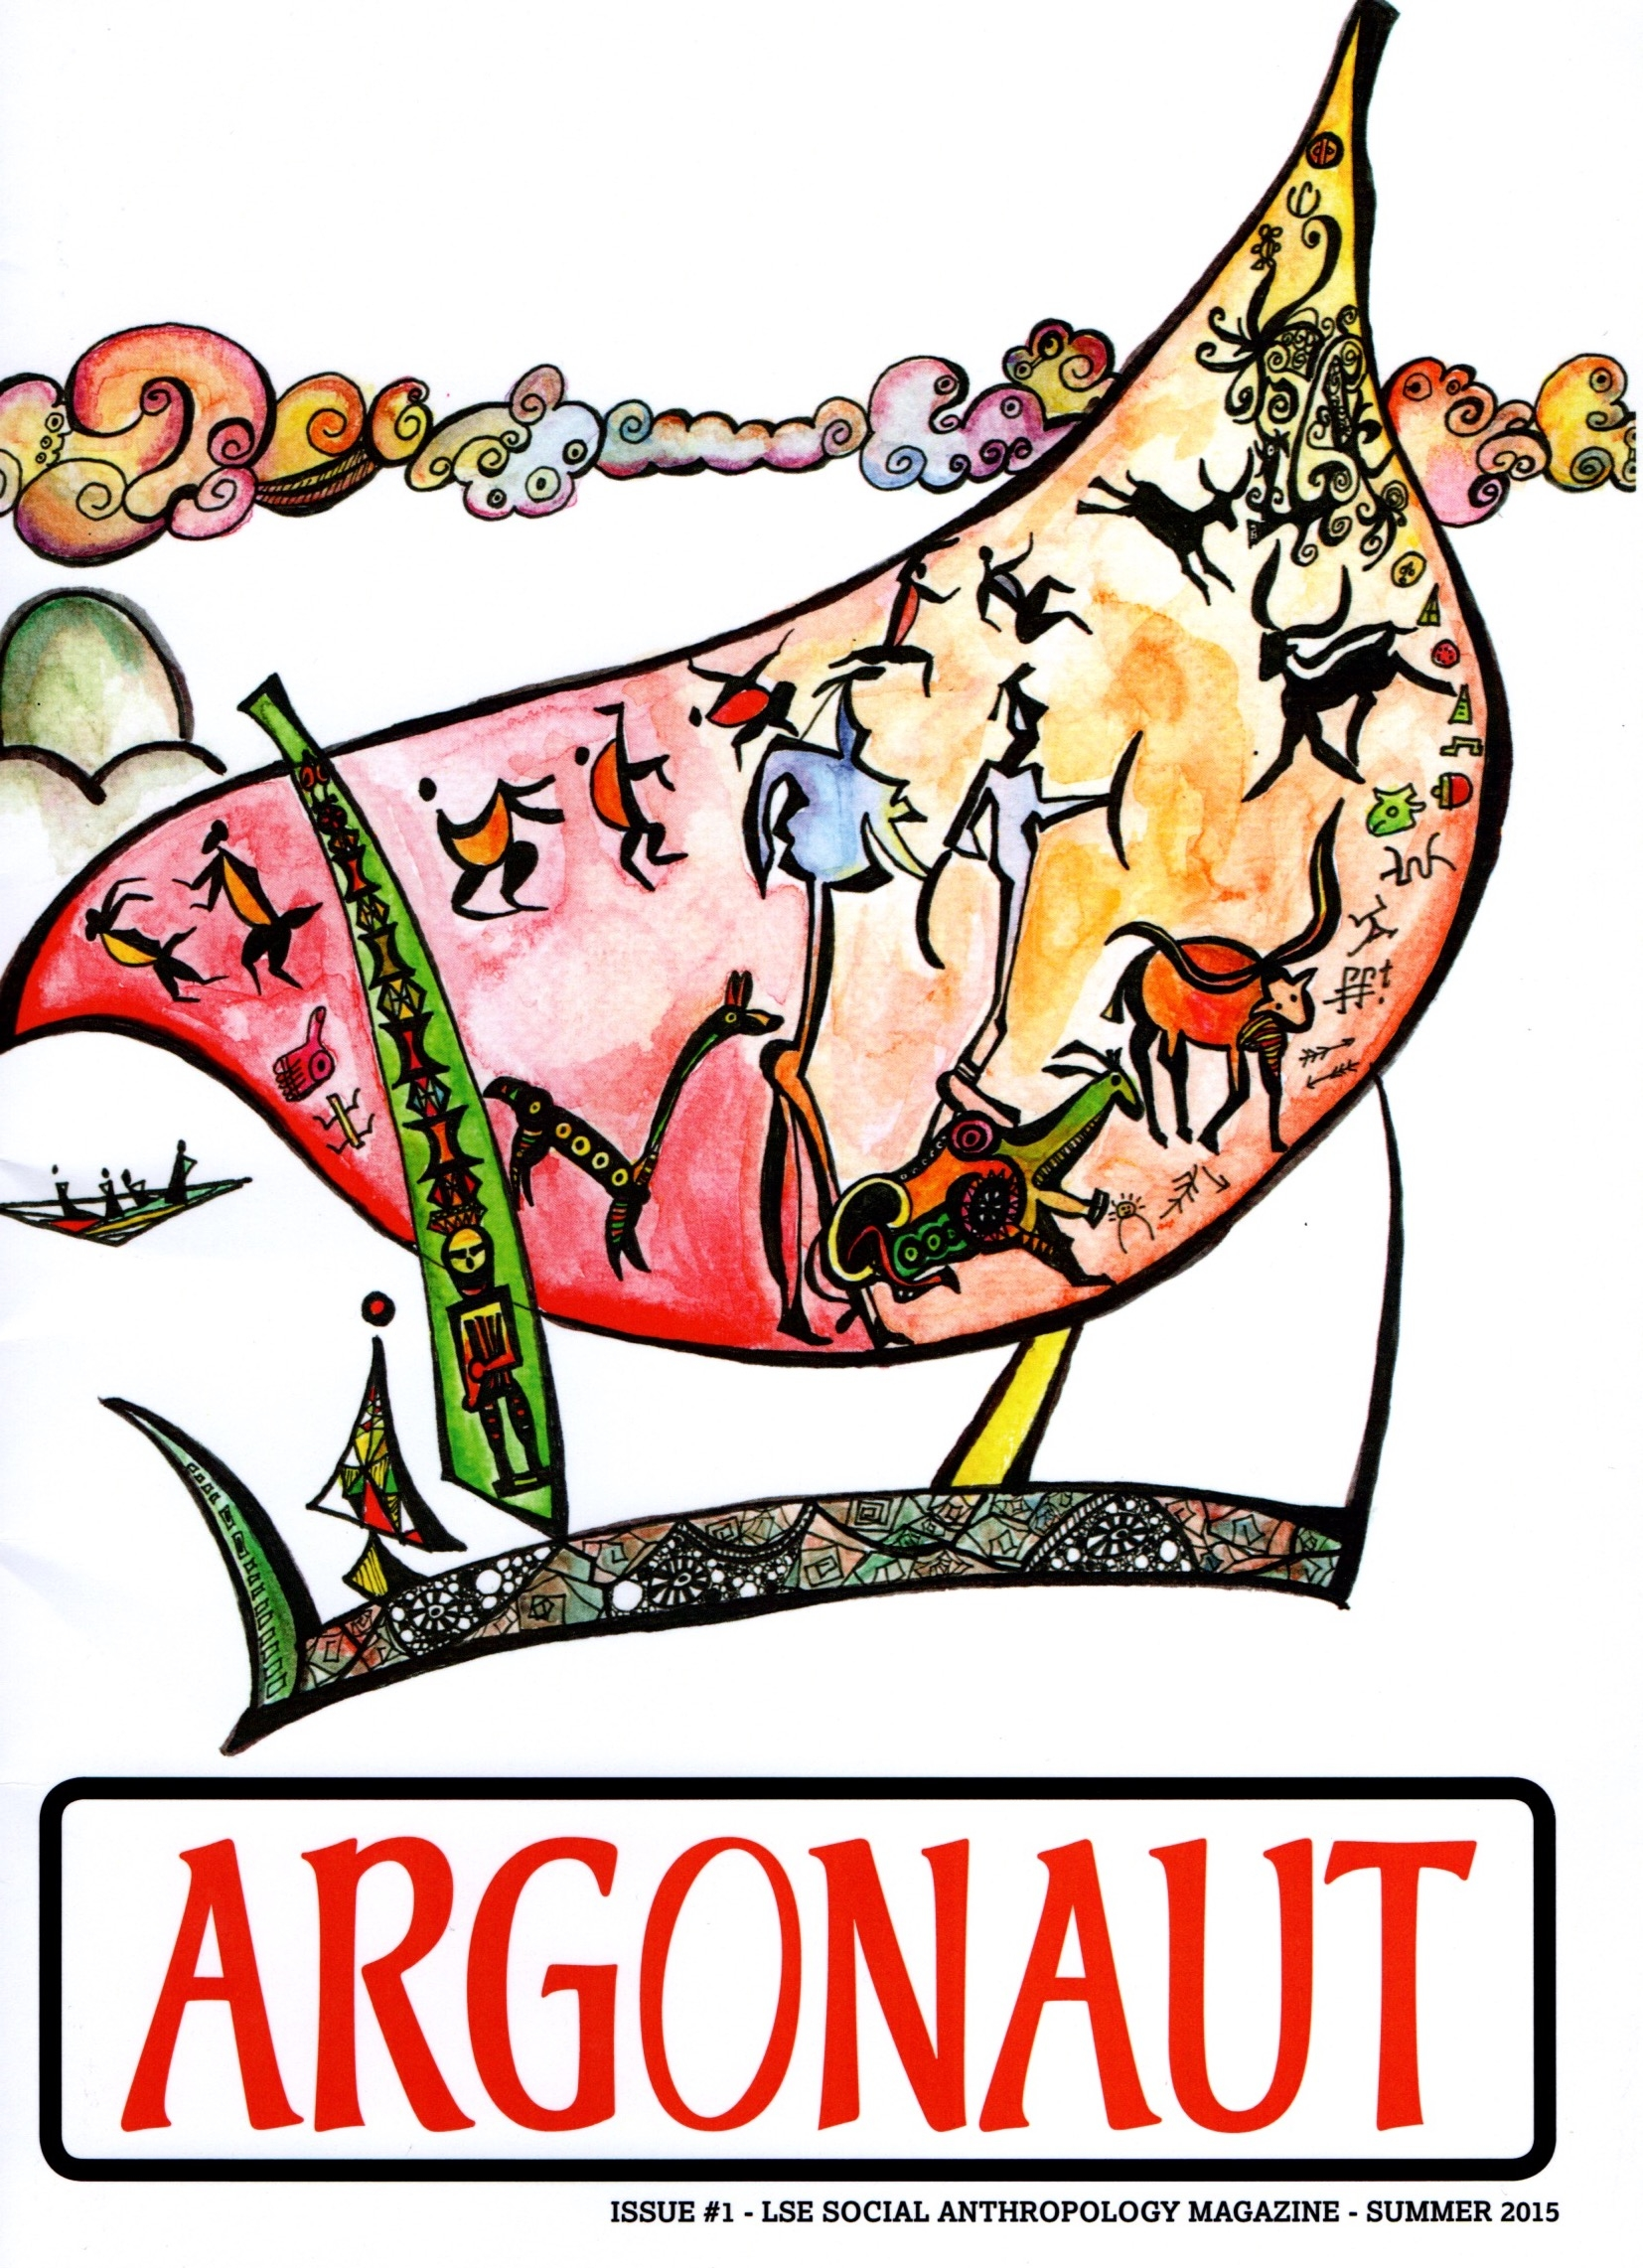 The cover of the first issue of the Argonaut (2015).